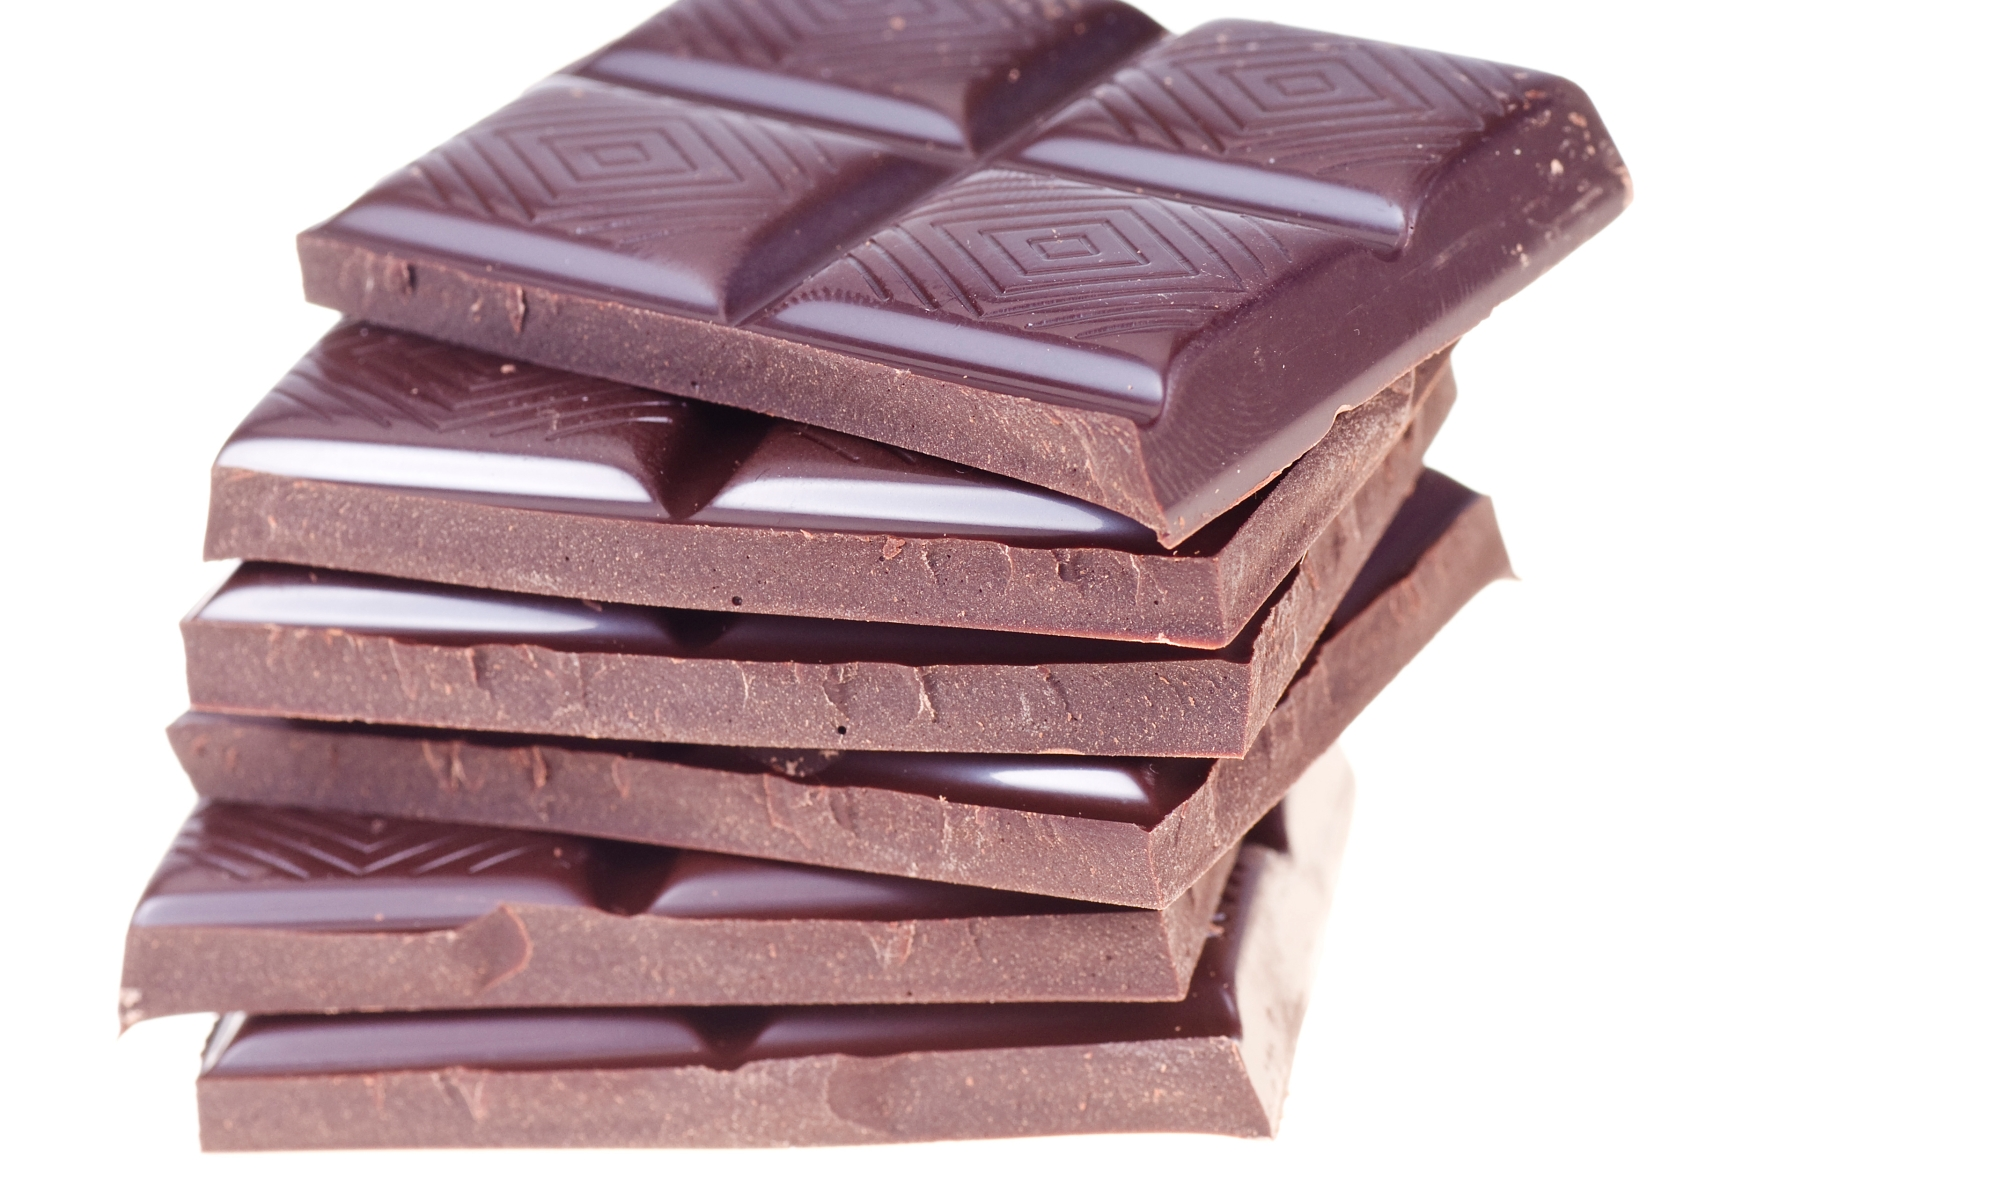 health benefits of eating chocolate freelance health writer